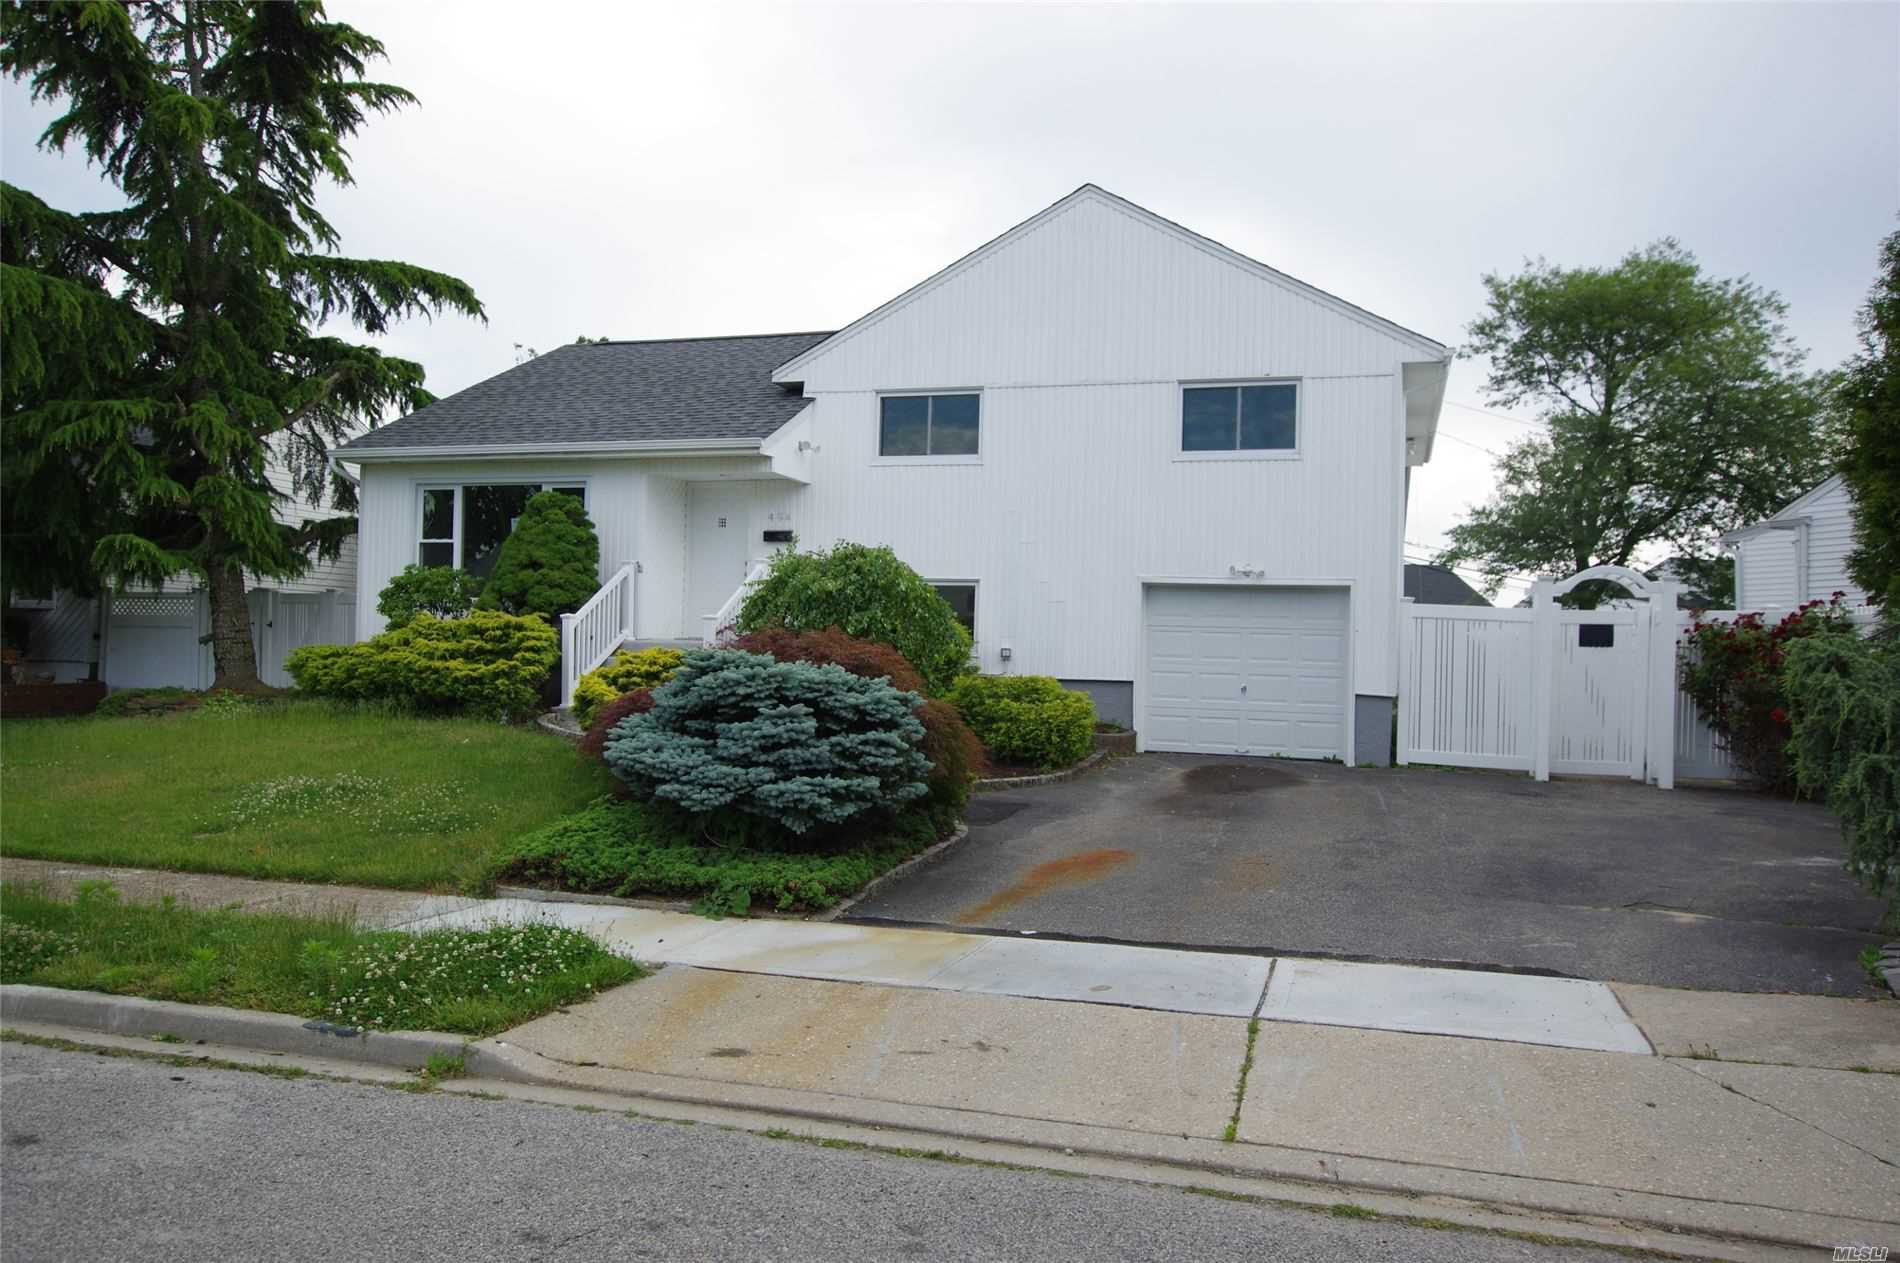 494 Ann Ln, Wantagh, New York